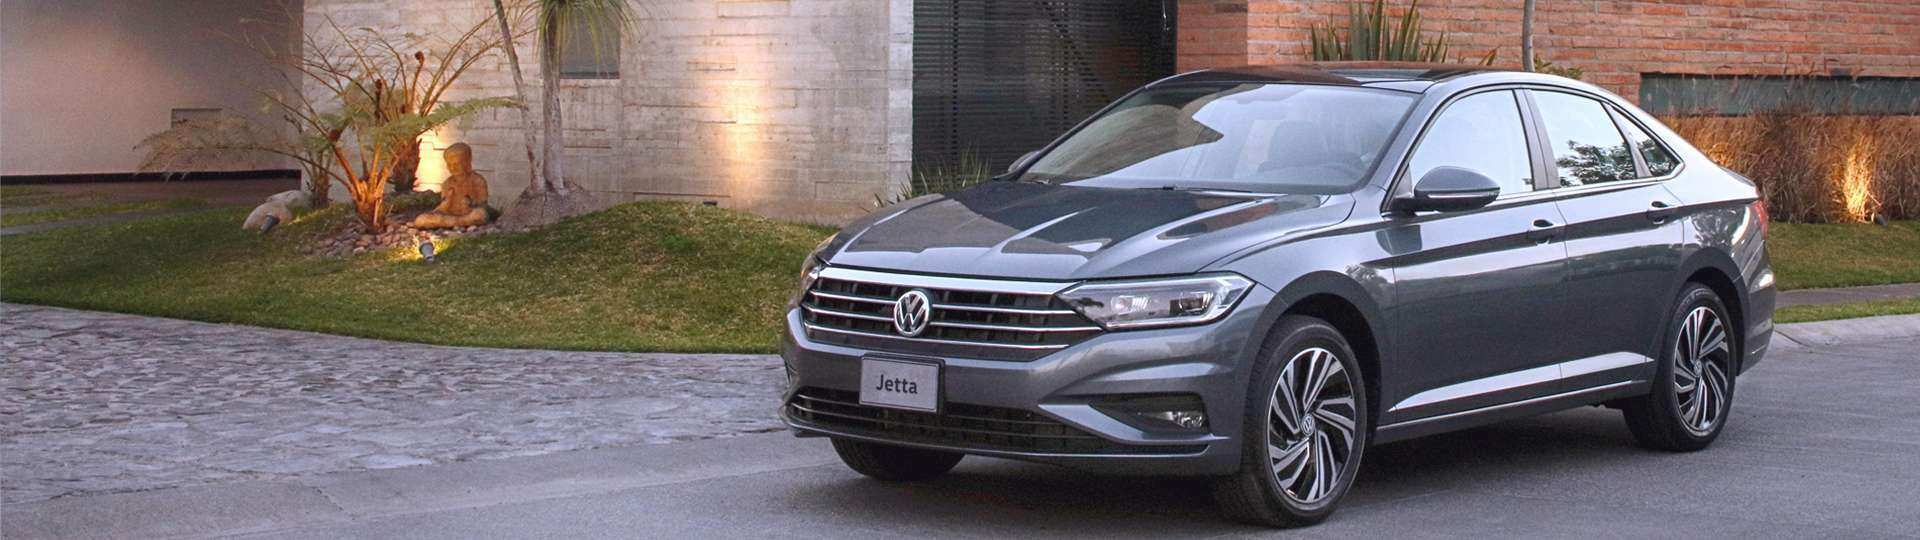 99 The Best Vw Jetta 2019 Mexico Exterior And Interior